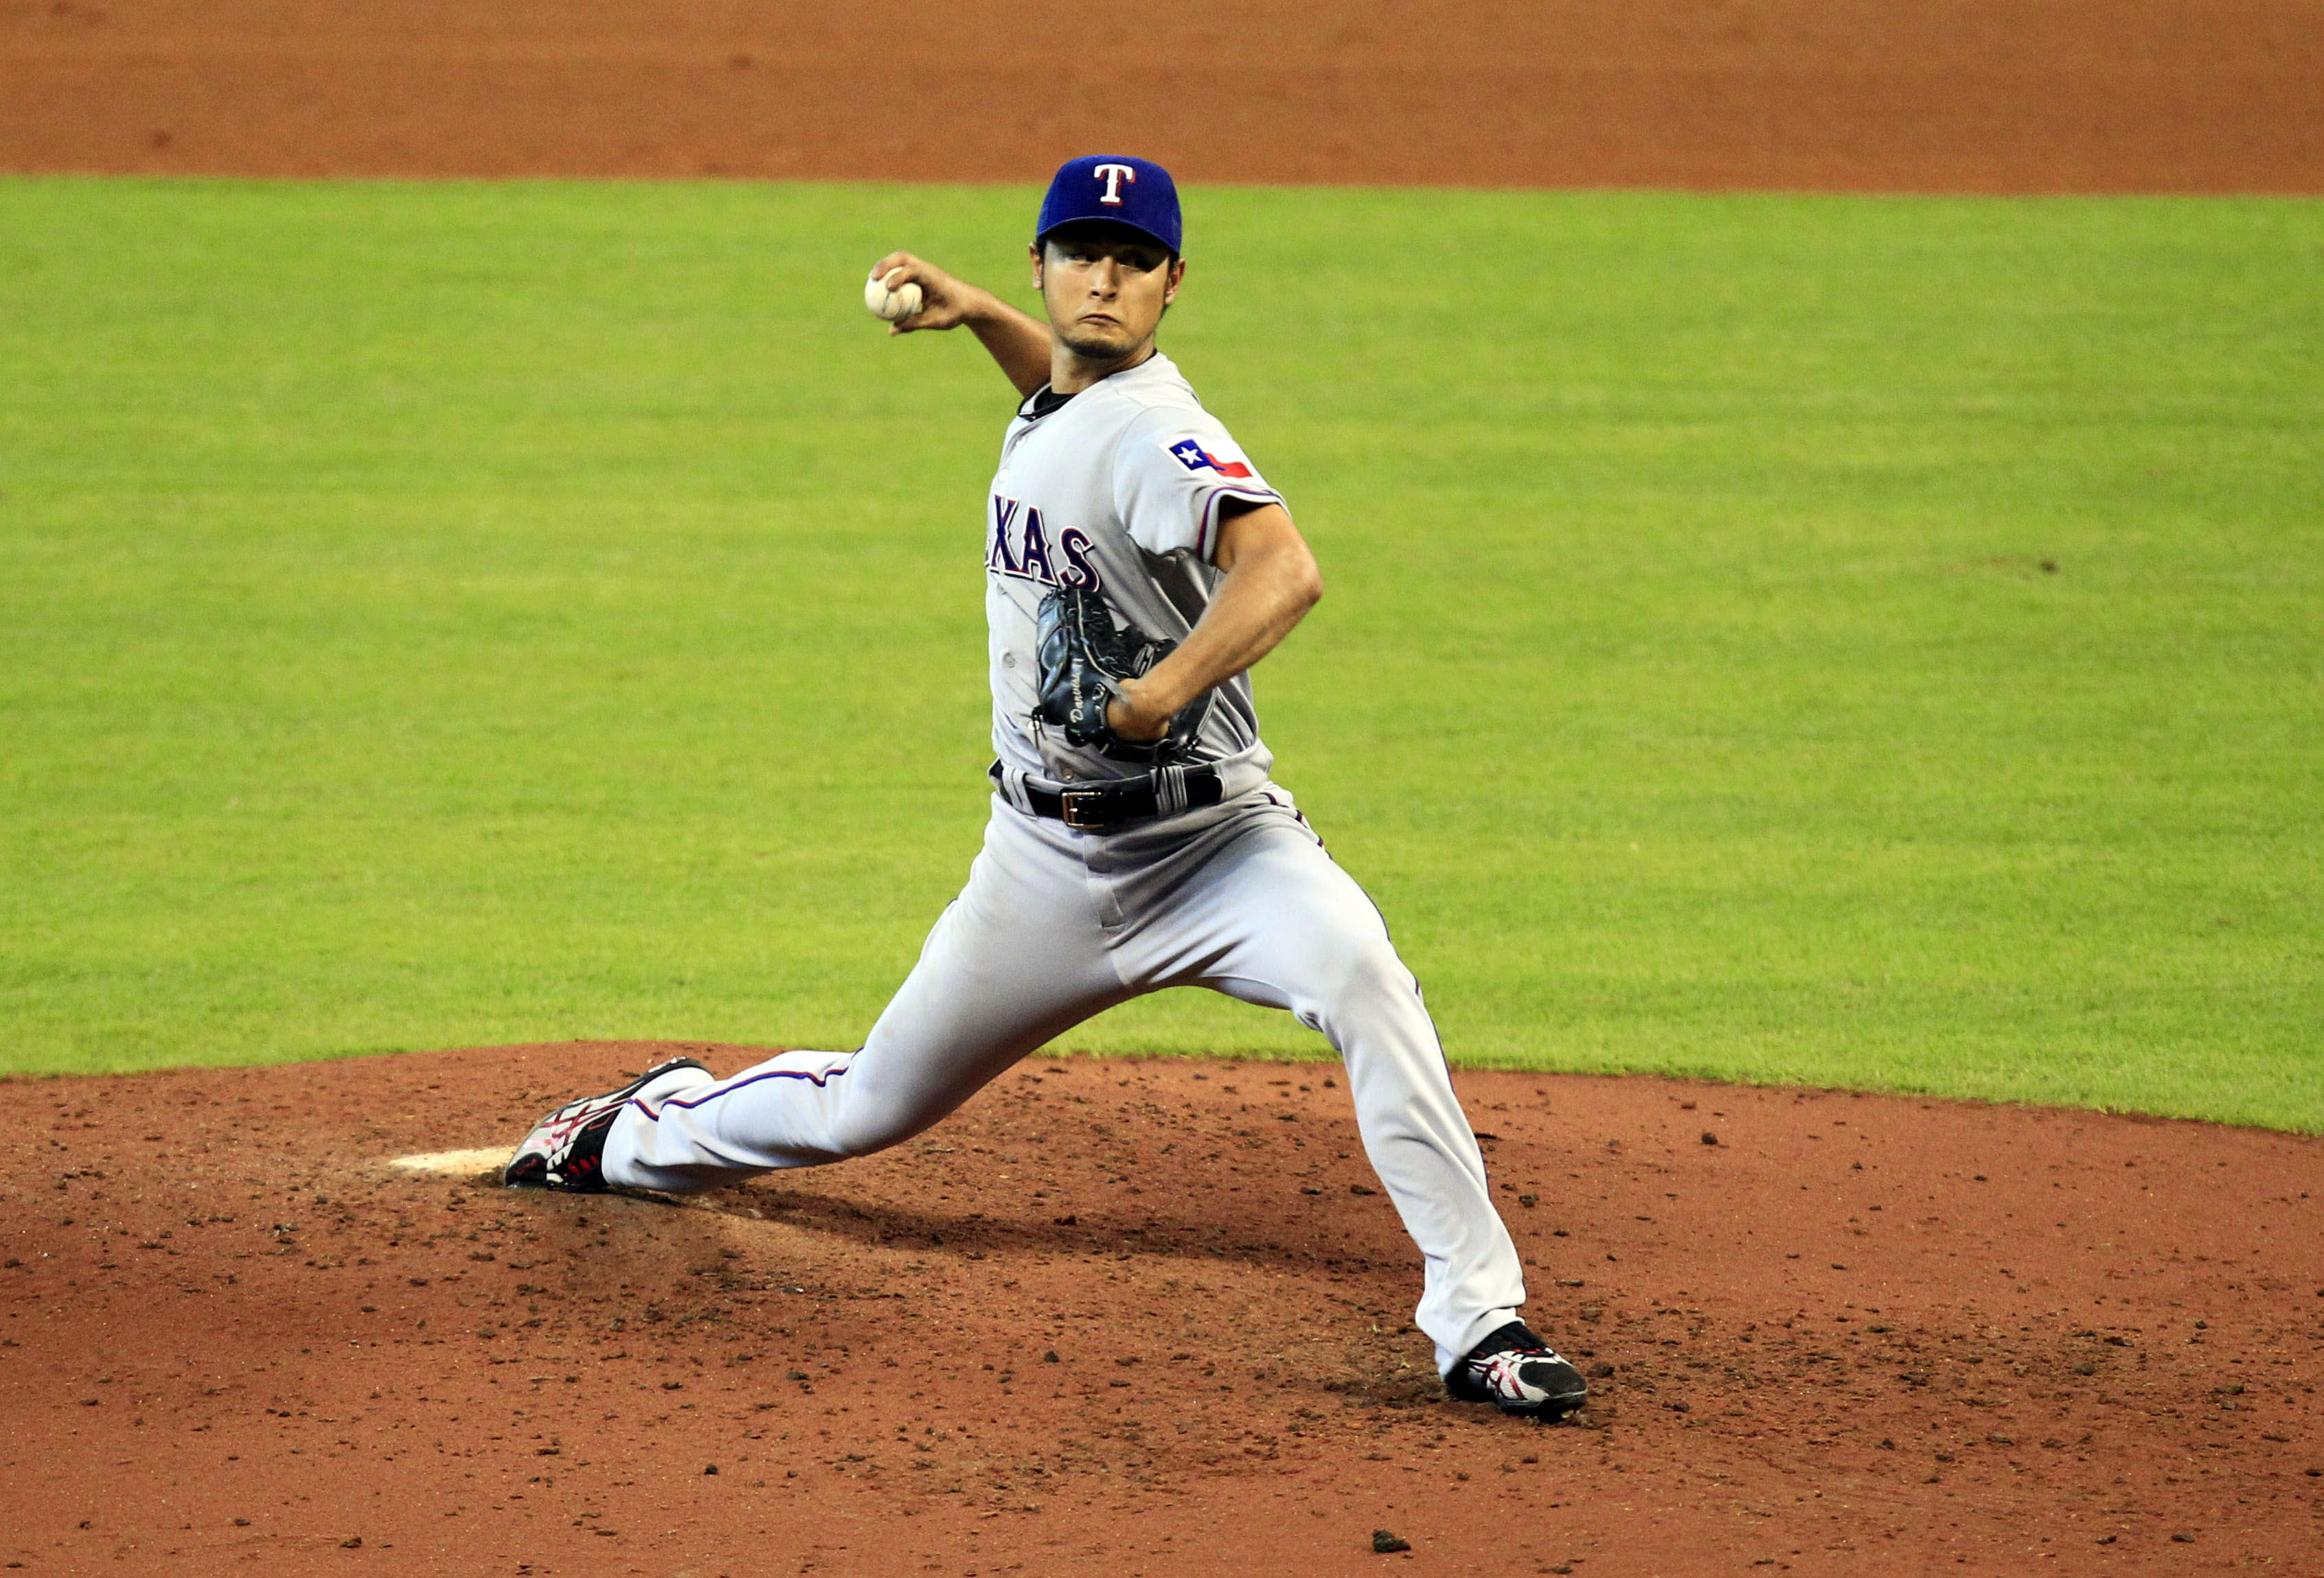 Texas Rangers starting pitcher Yu Darvish pitches against the Houston Astros during the eighth inning at Minute Maid Park.